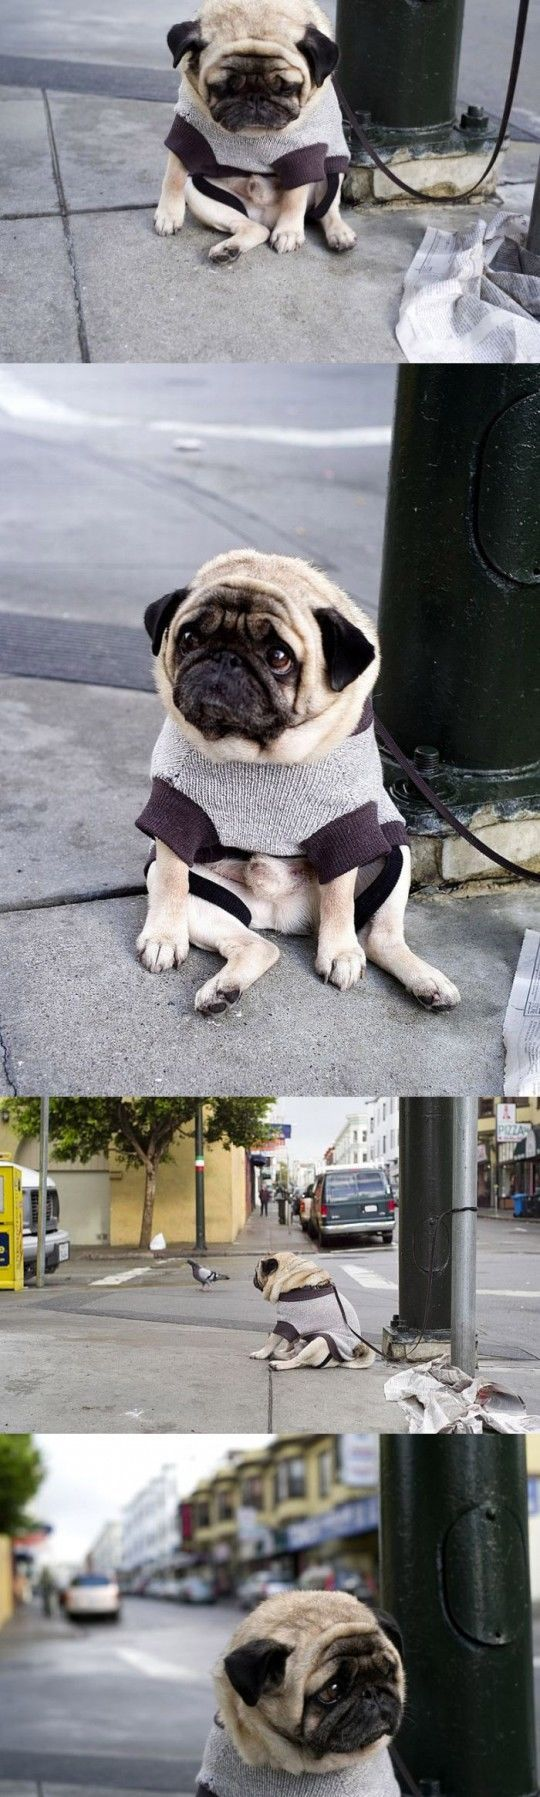 A depressed pug........AWWWWWWWWW why cant i ever keep my cool around PUGS....even the word makes my crazy lol